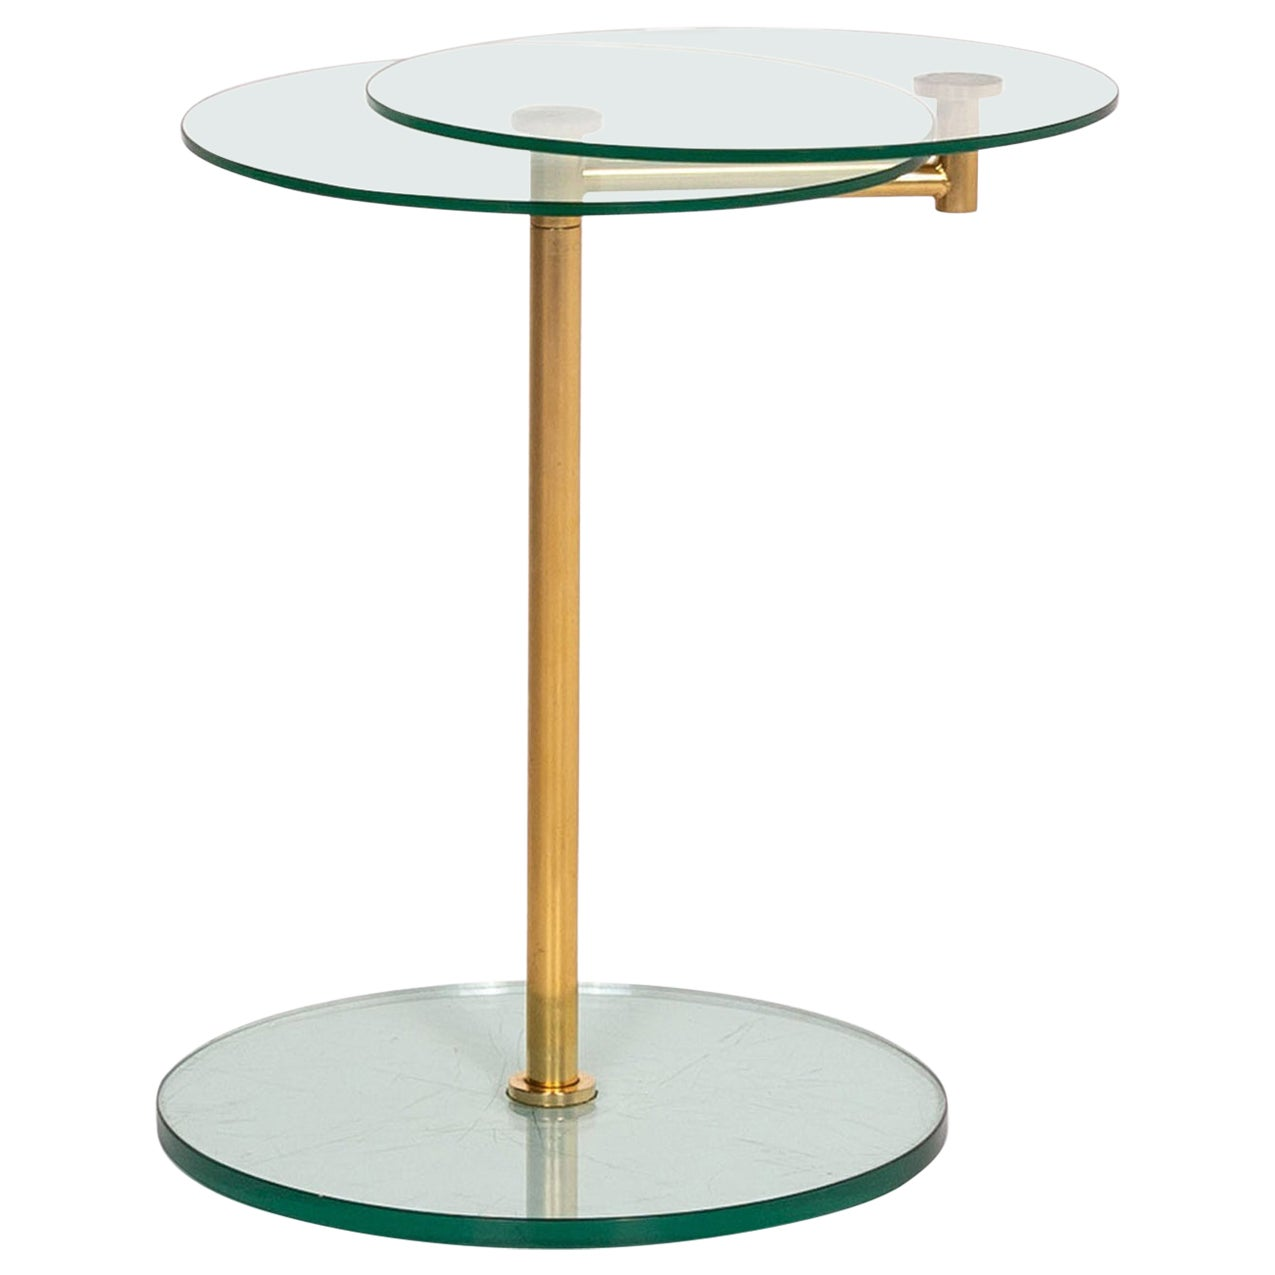 Ronald Schmitt Glass Side Table Gold Function Coffee Table Adjustable Table